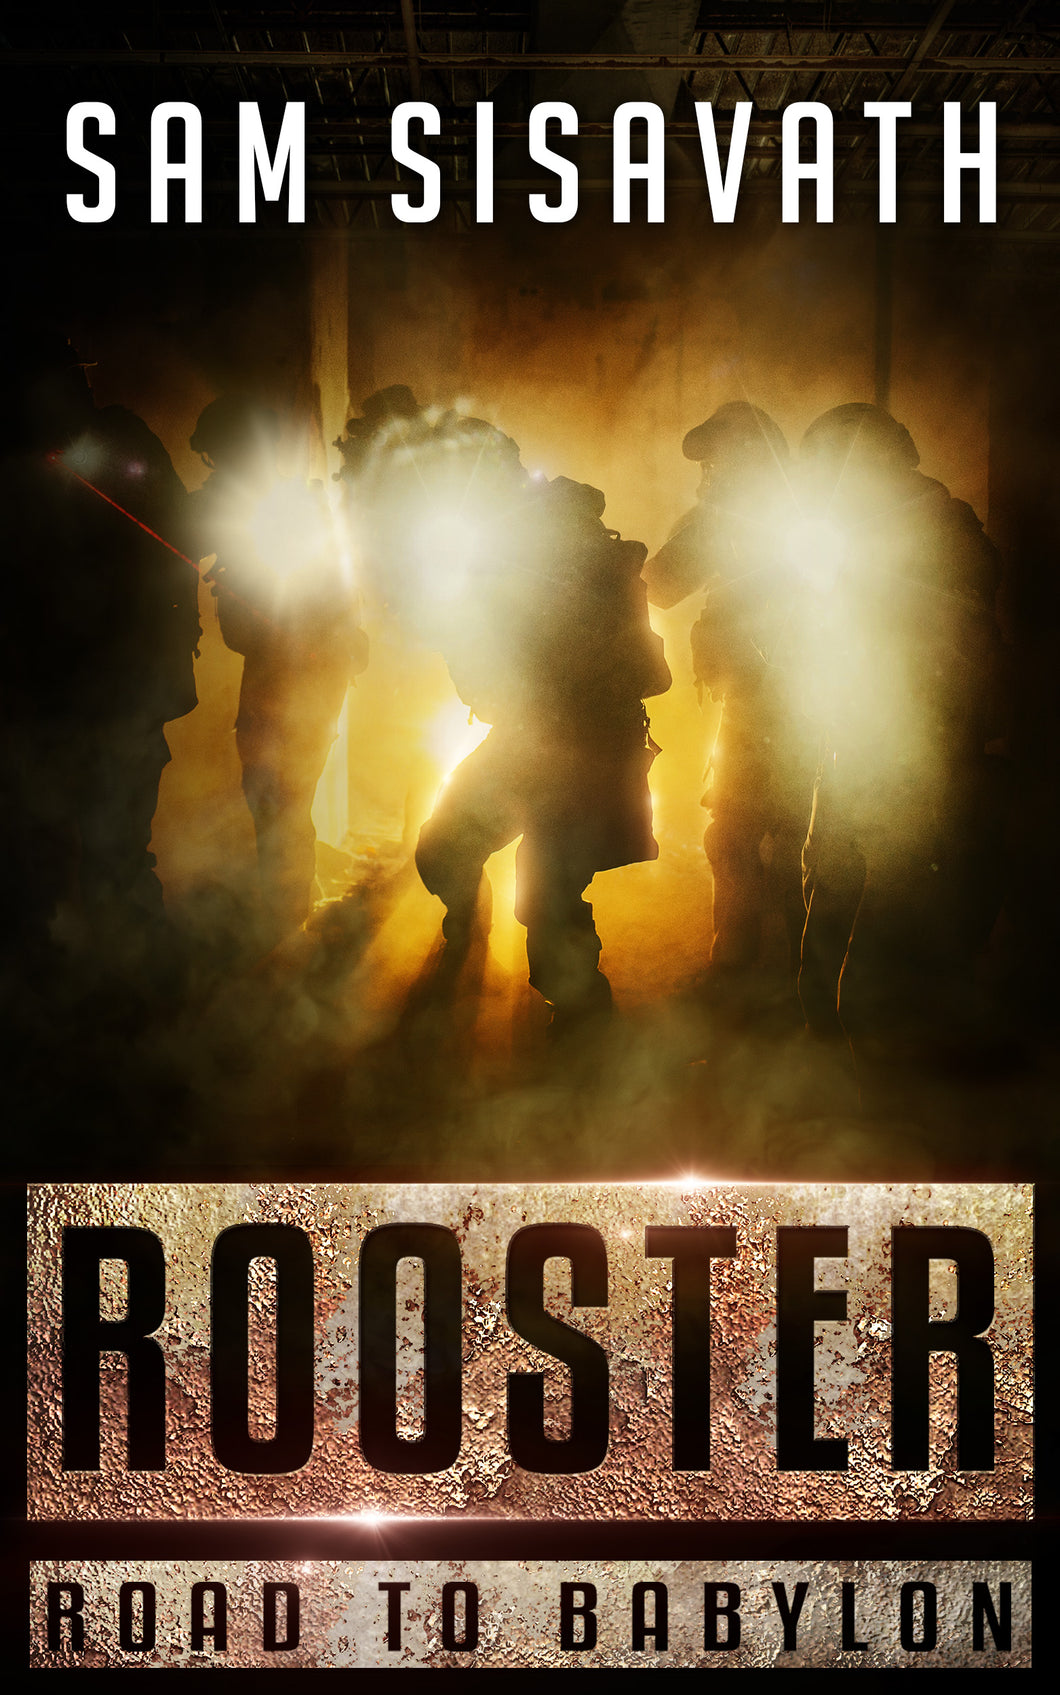 Rooster (Road to Babylon #3)